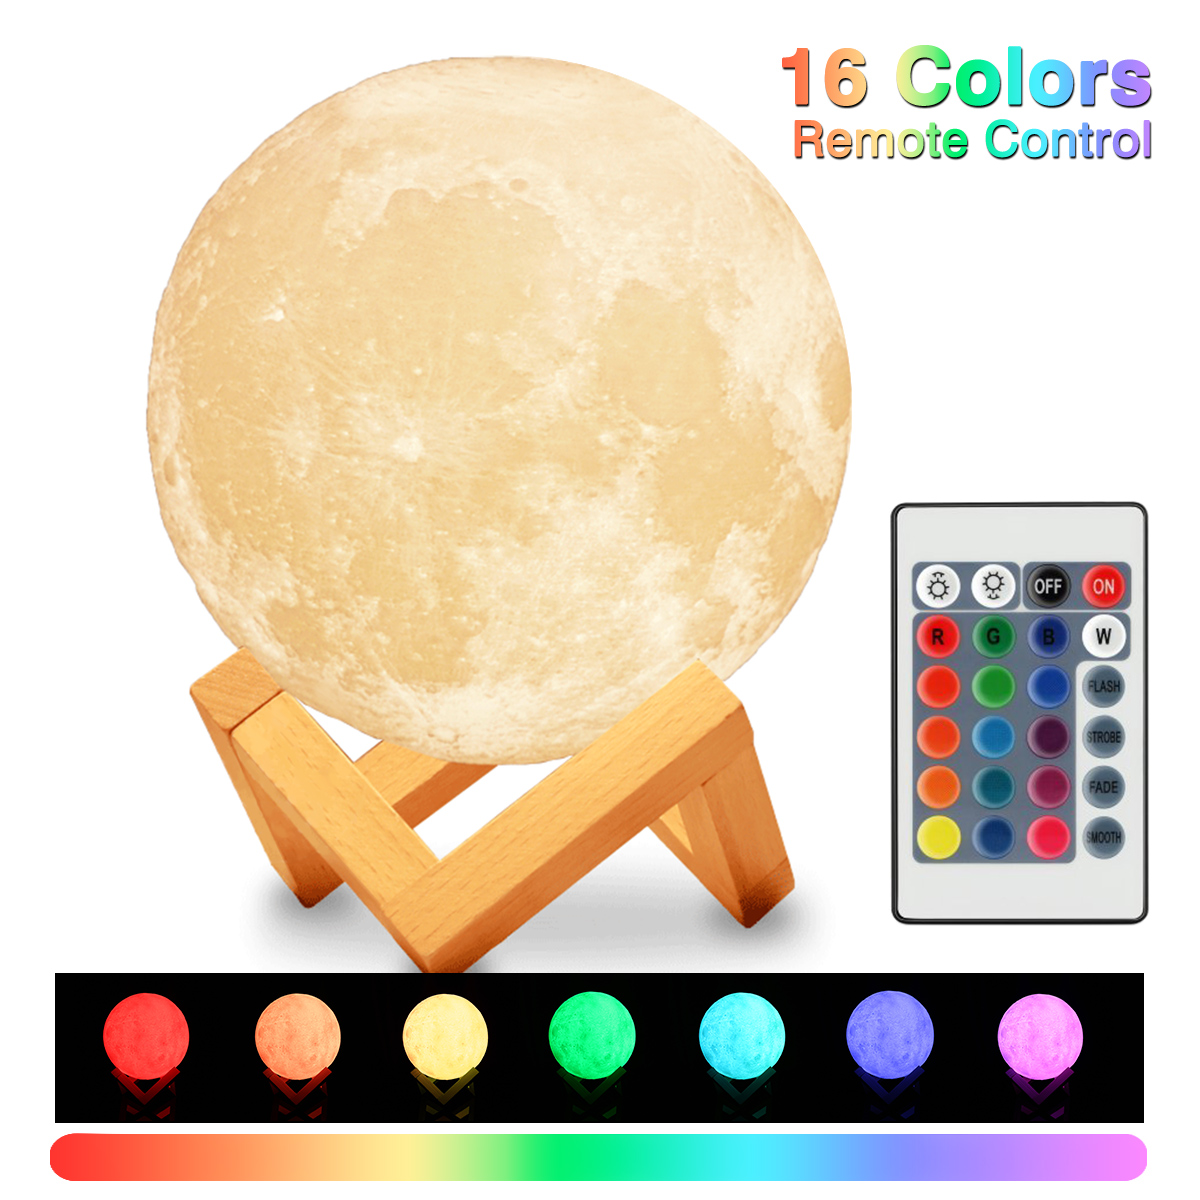 3D Print Moon Lamp Rechargeable 16 Colors Change Touch Switch Lunar Light 15cm Dimmable Baby Bedroom Night Light Home Decor 2 color 16 colors 3d print moon lamp rechargeable led night light rgb color change touch switch bedroom 3d moon light home decor